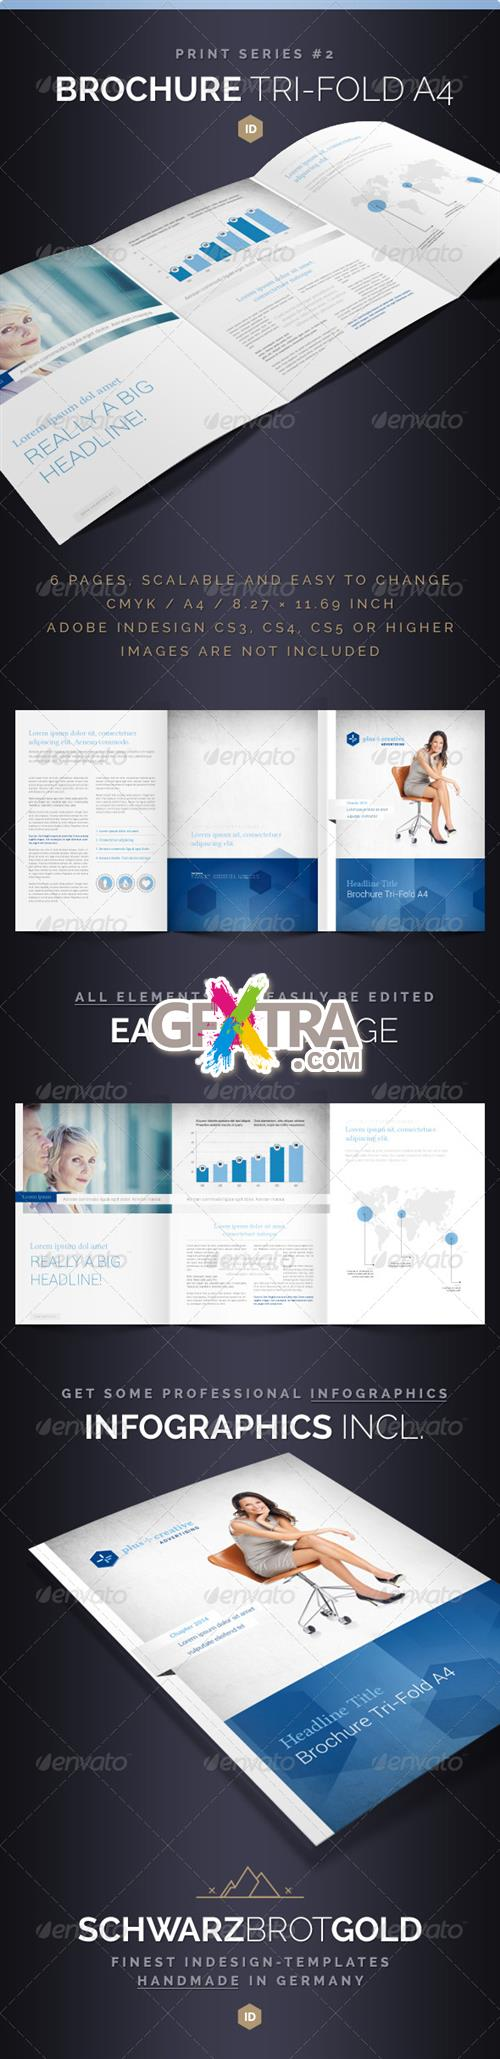 GraphicRiver - Brochure Tri-Fold A4 Series 2